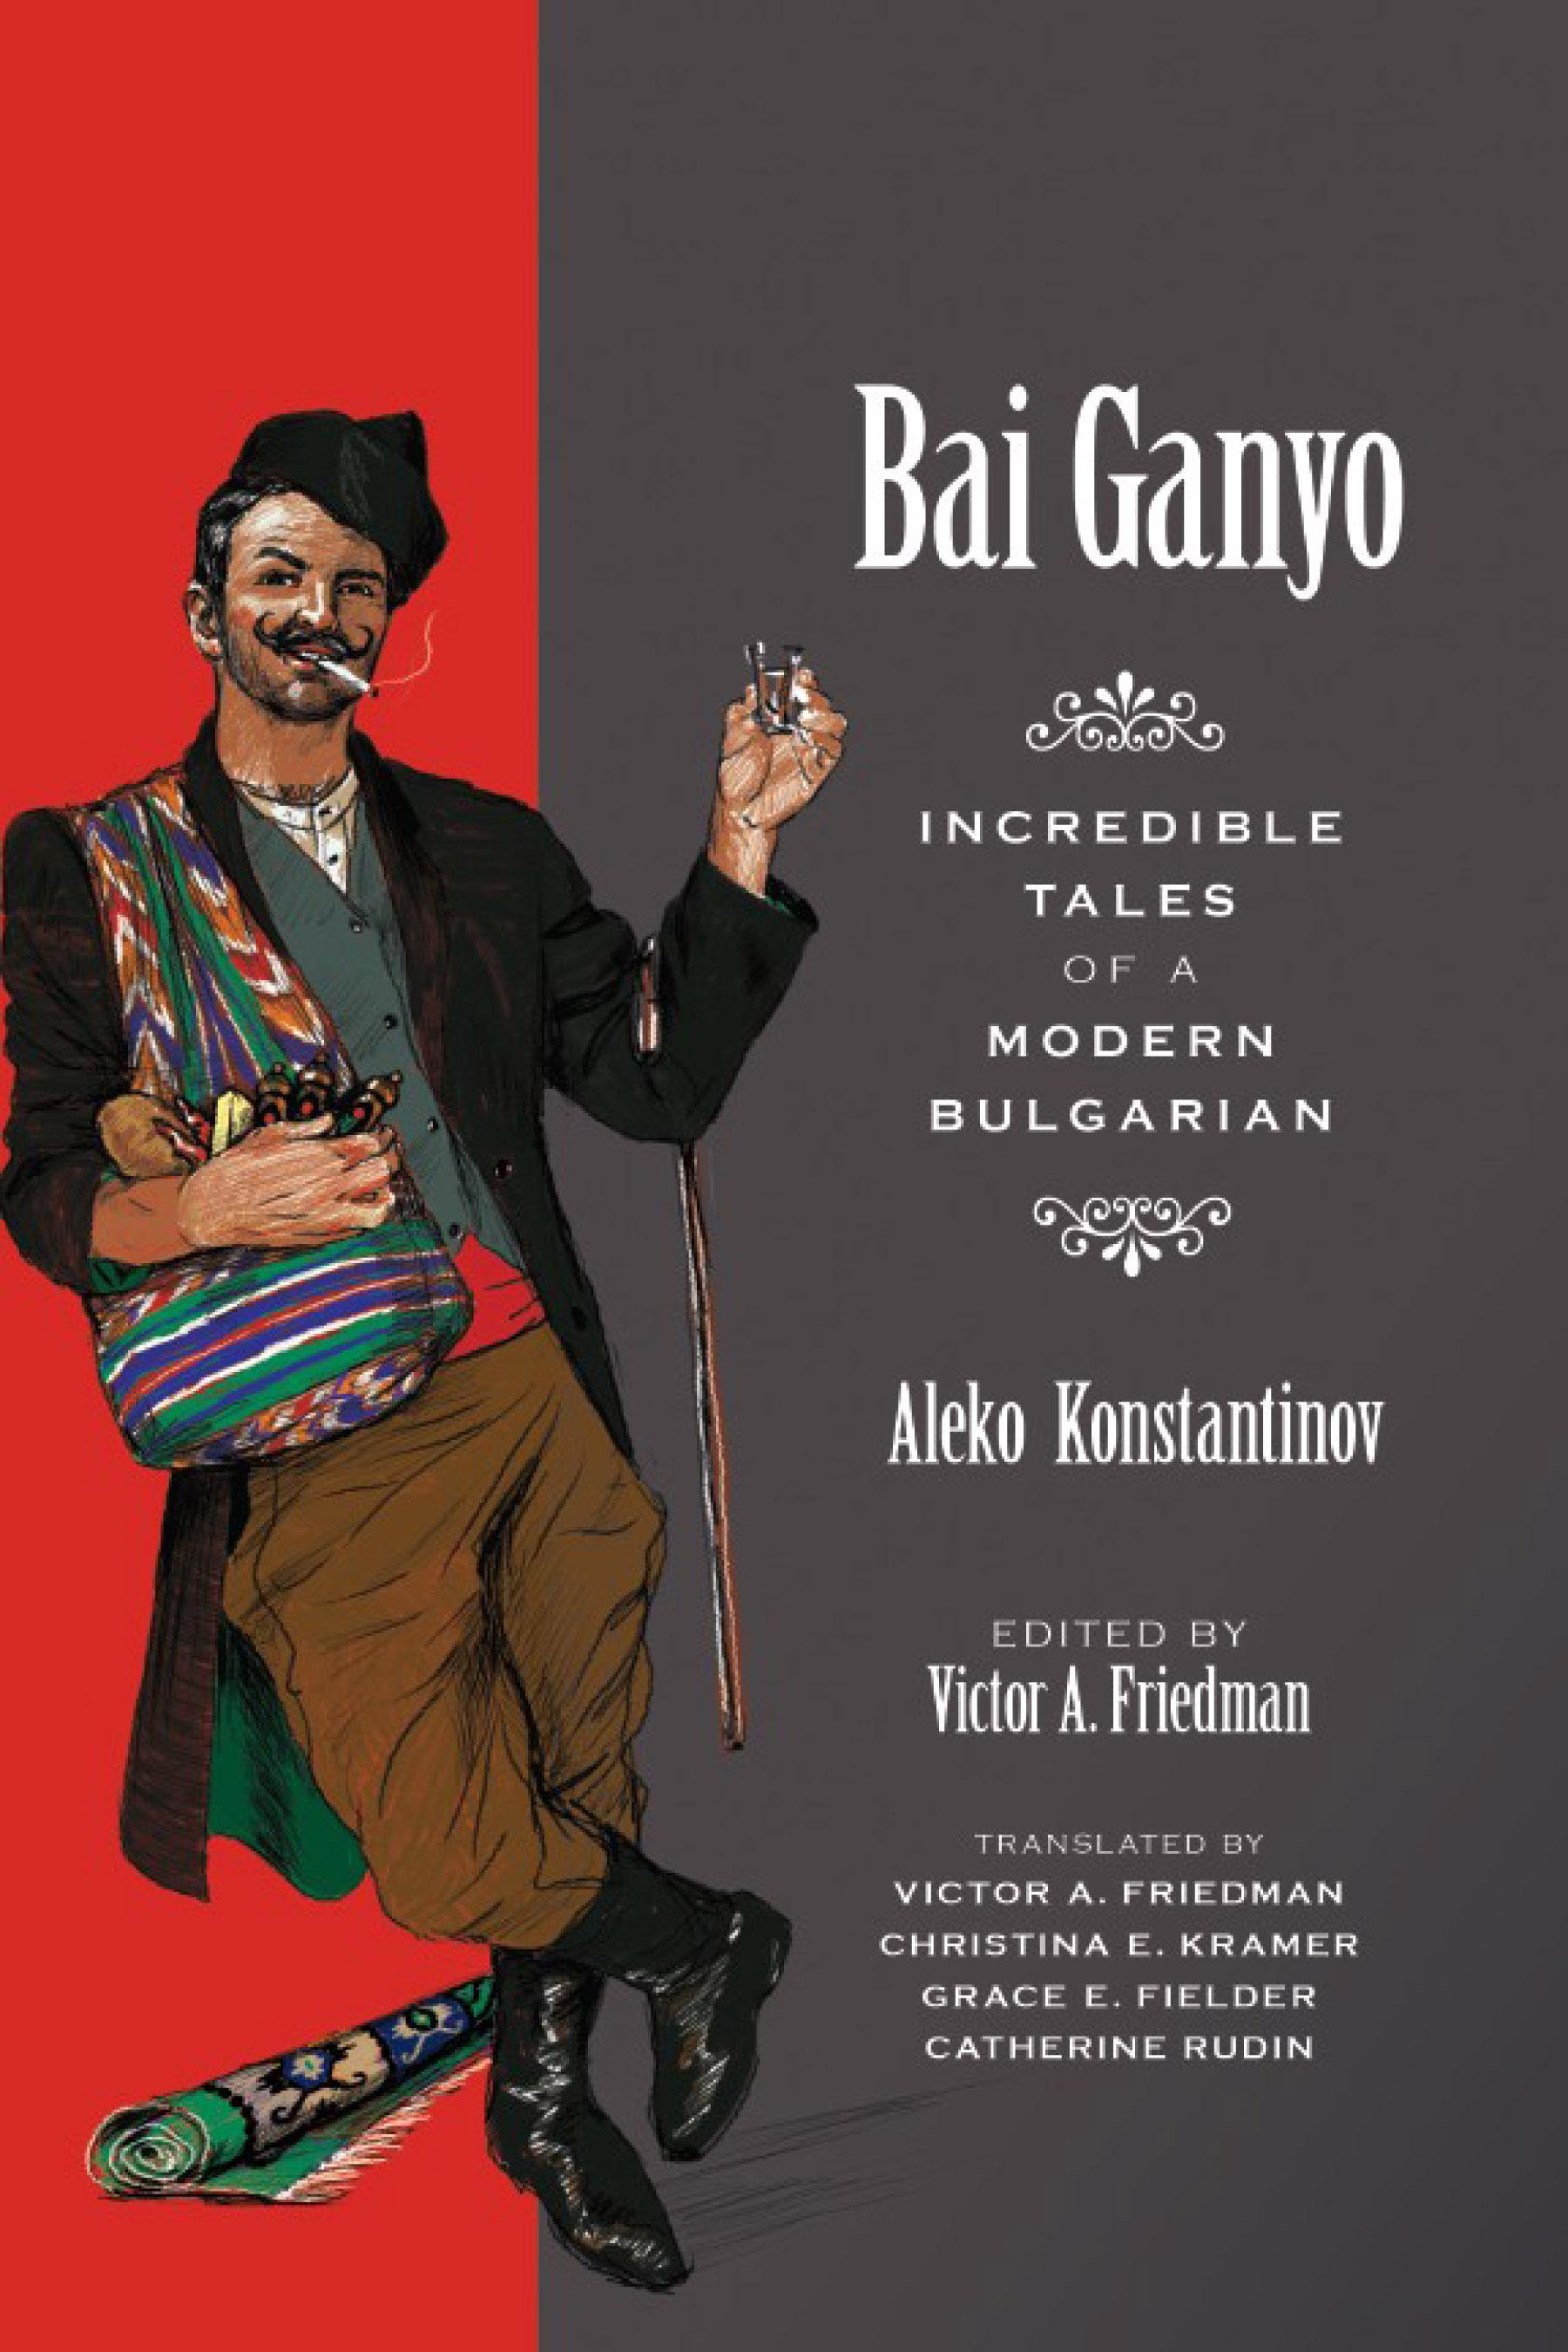 Bai Ganyo: Incredible Tales of a Modern Bulgarian By: Aleko Konstantinov